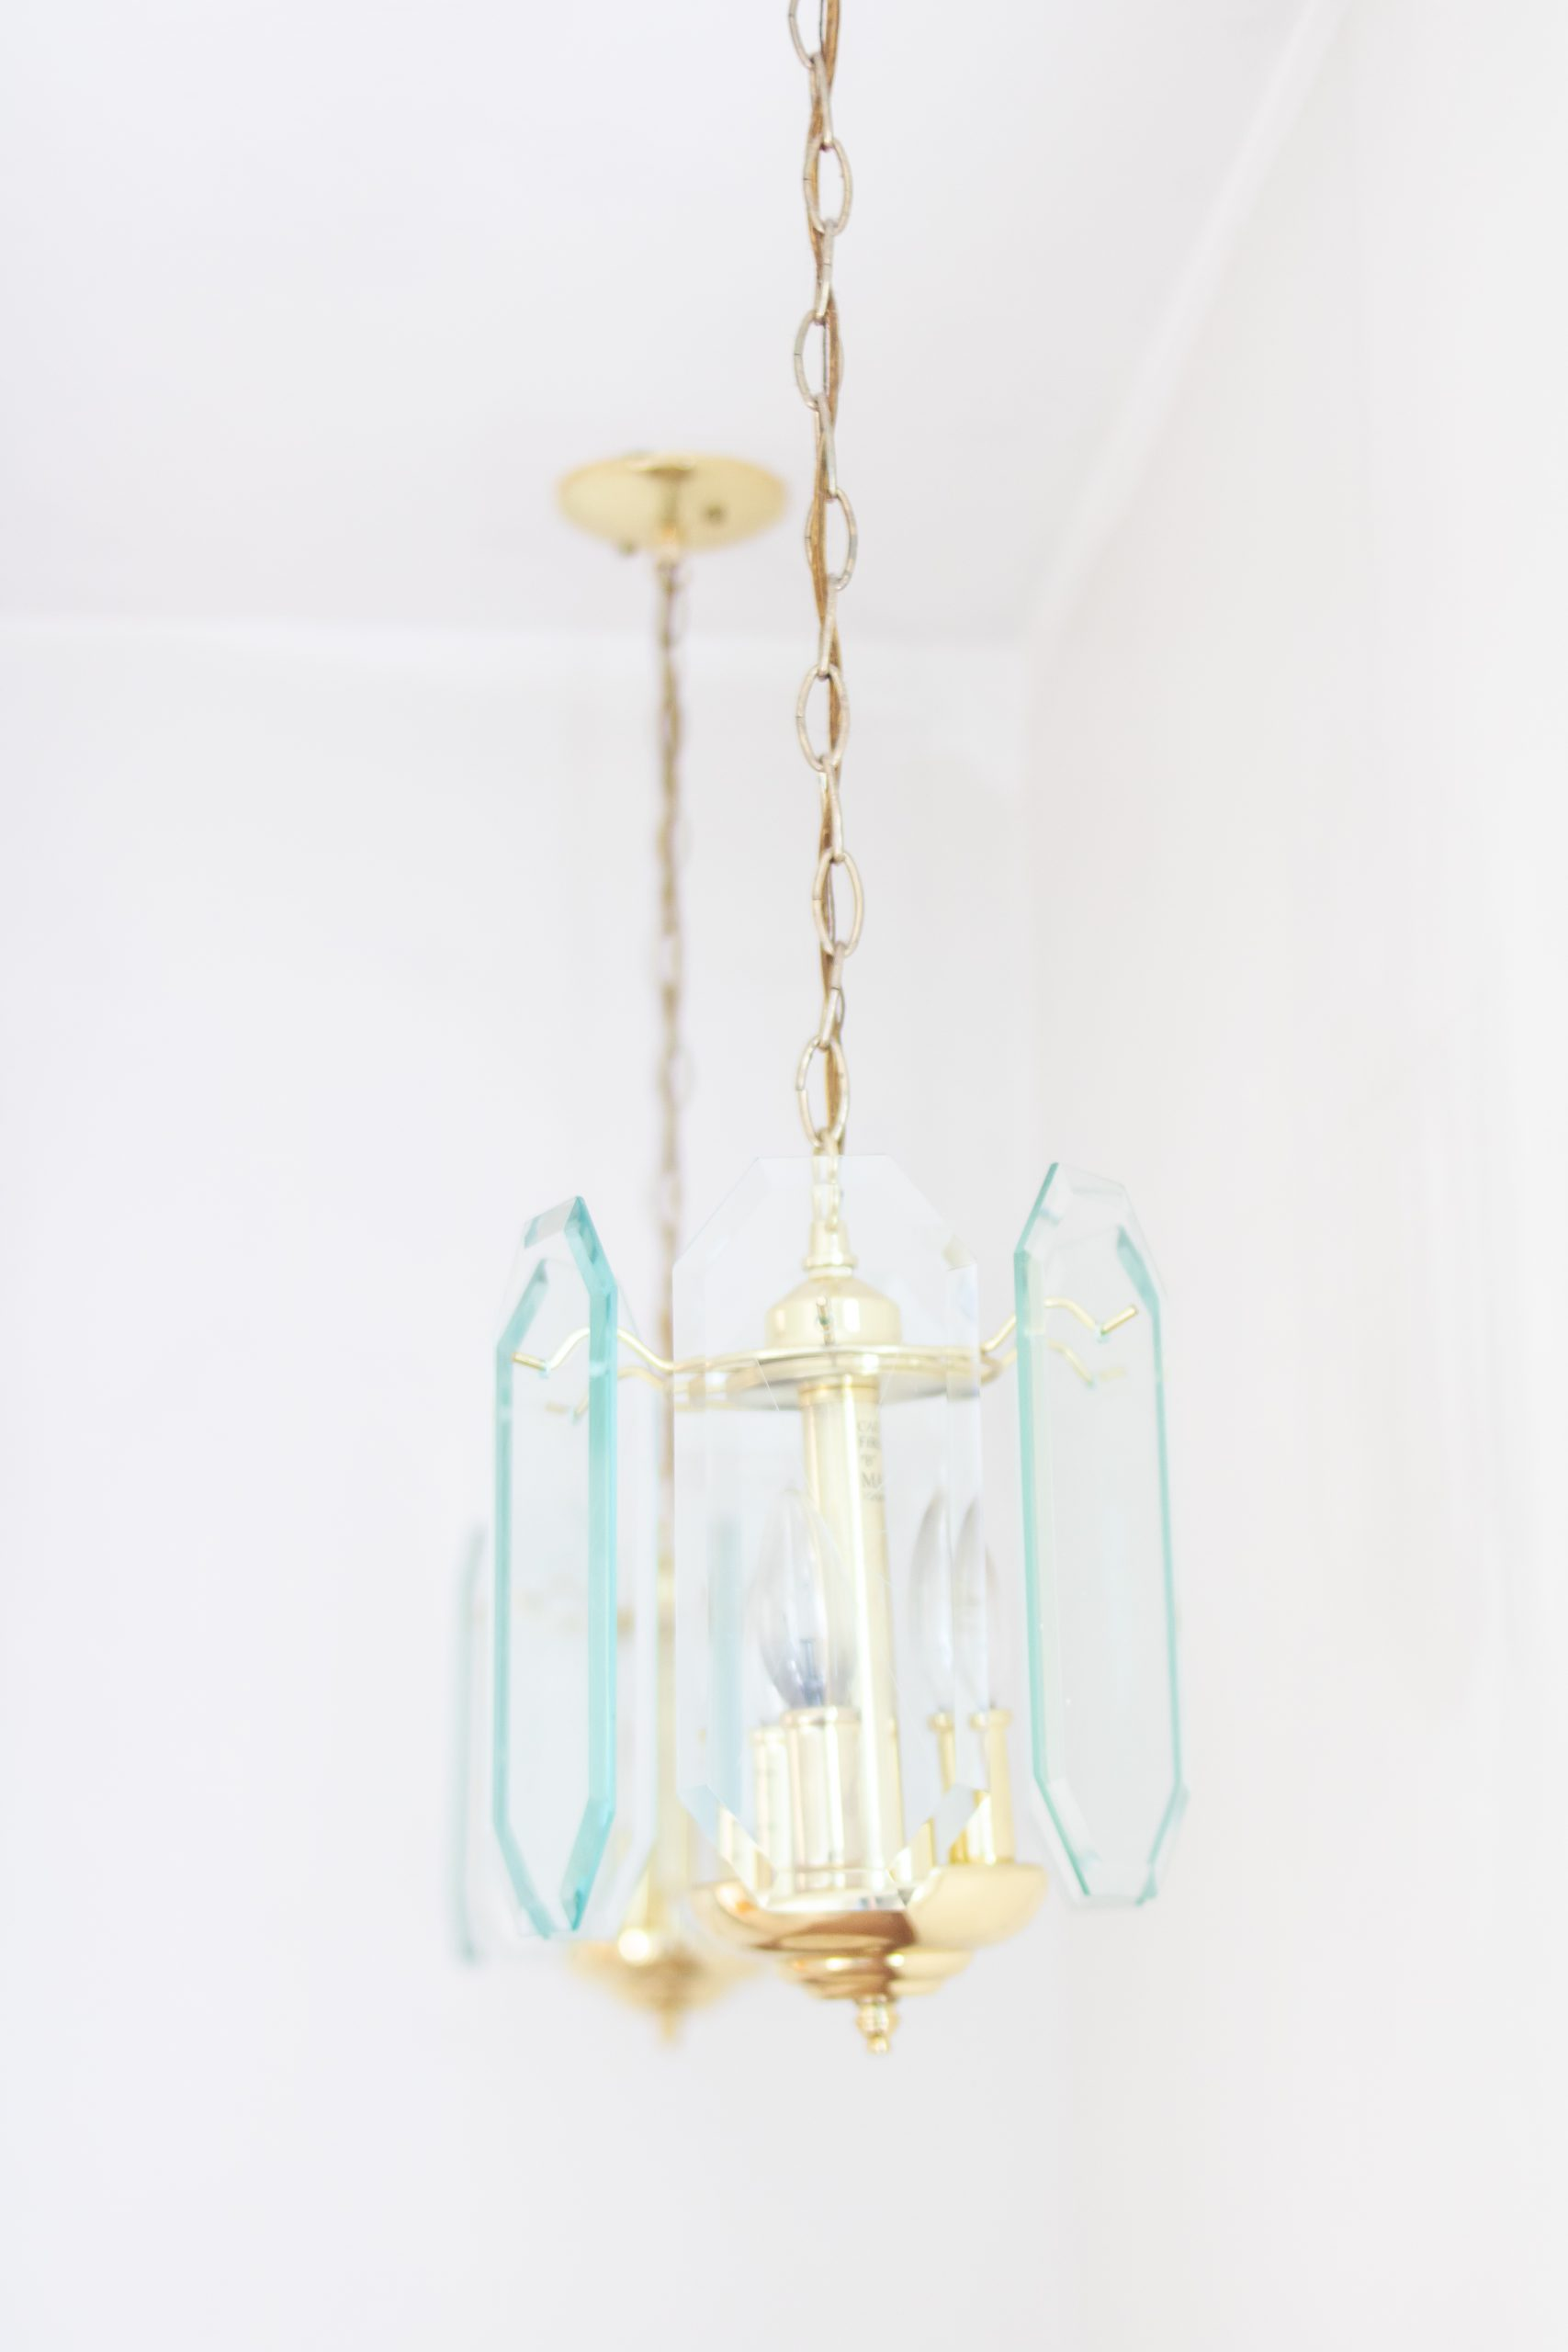 antique glass pendant lights with gold chain